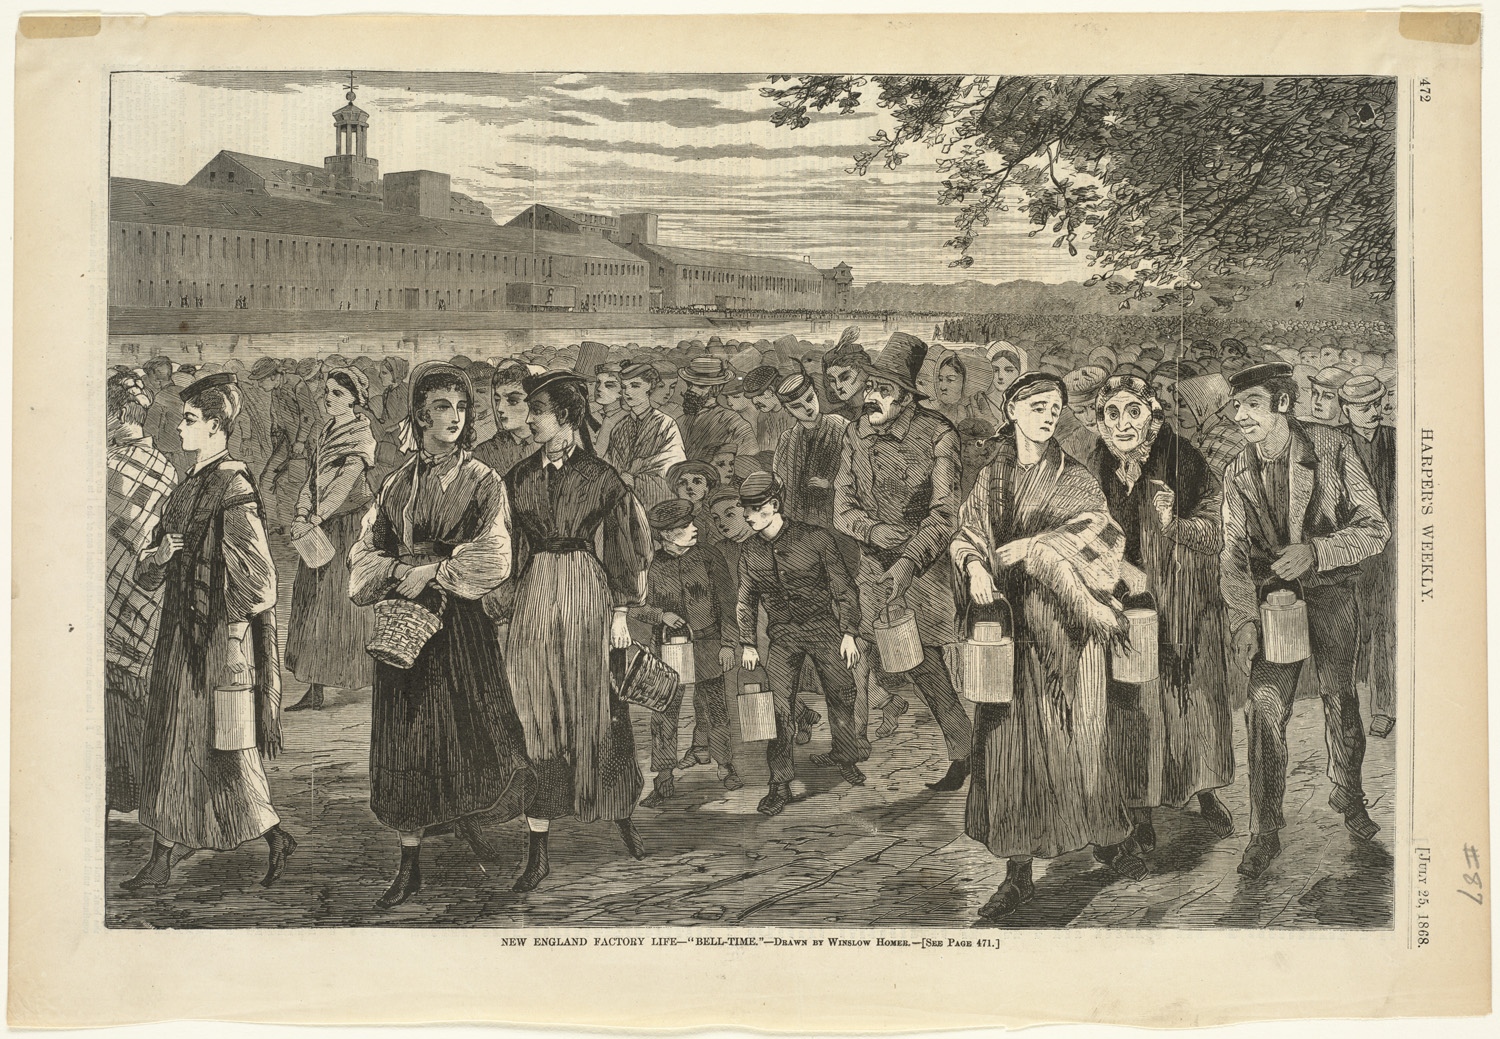 """Winslow Homer, """"Bell-Time,"""" Harper's Weekly vol. XII (July 1868): p. 472, http://commons.wikimedia.org/wiki/File:New_England_factory_life_--_%27Bell-time.%27_%28Boston_Public_Library%29.jpg."""